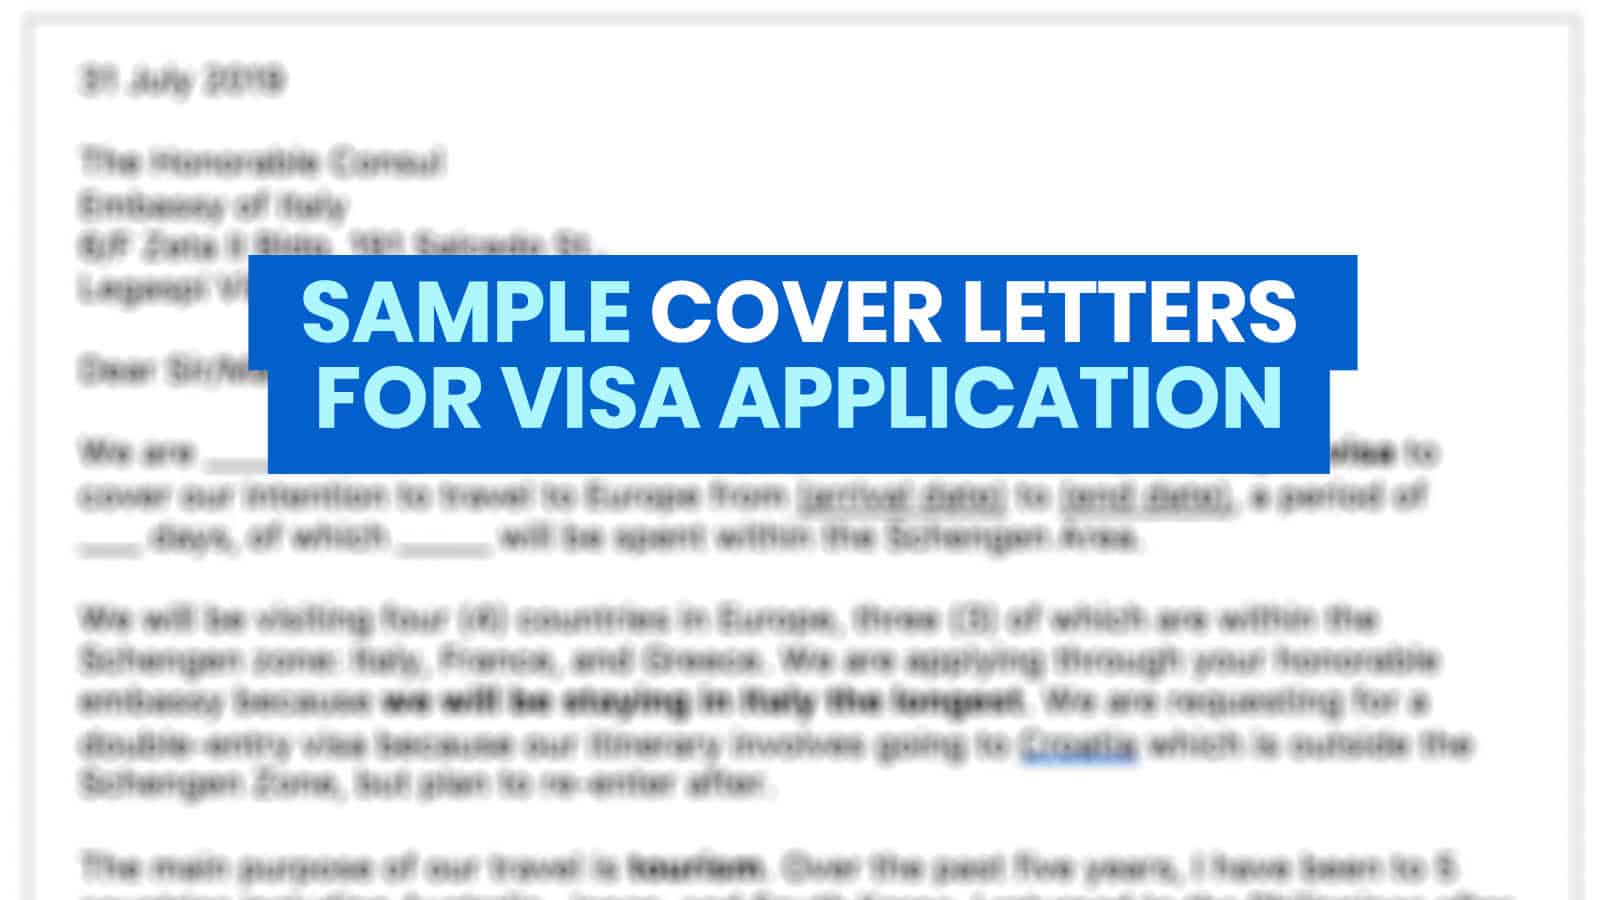 Sample Cover Letters For Visa Application Korea Schengen Australia The Poor Traveler Itinerary Blog